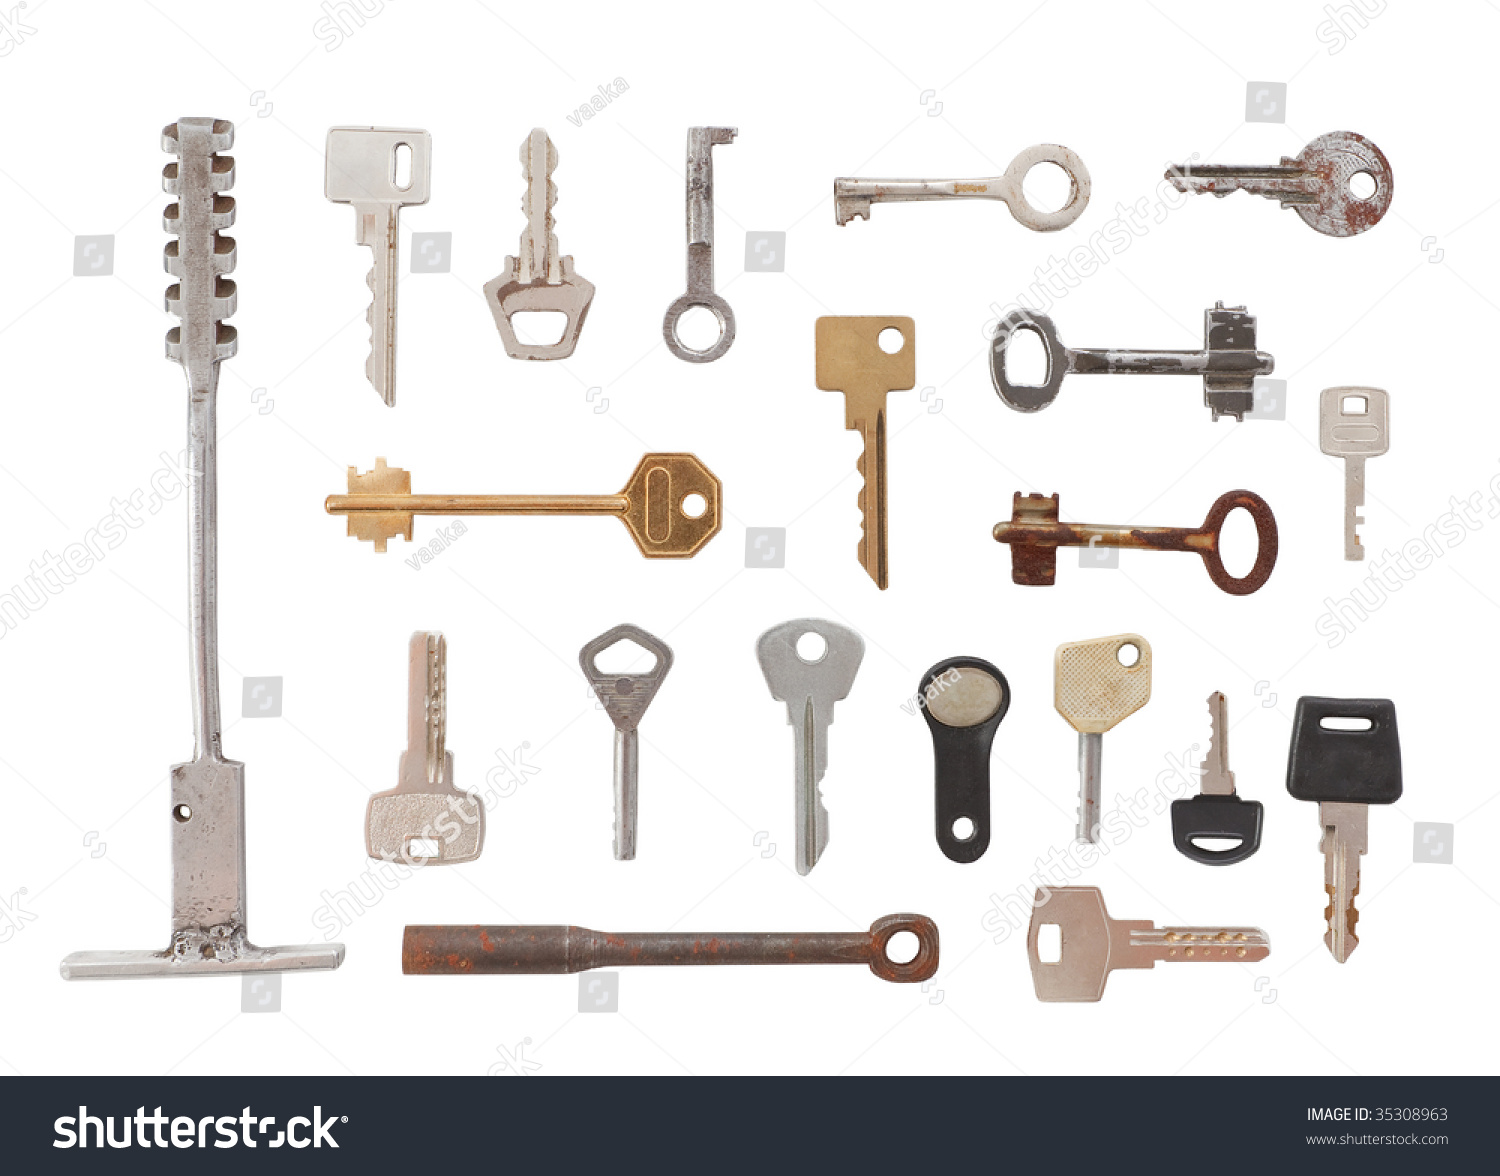 Twenty Different Types Of Keys Big And Small, Old And New ...